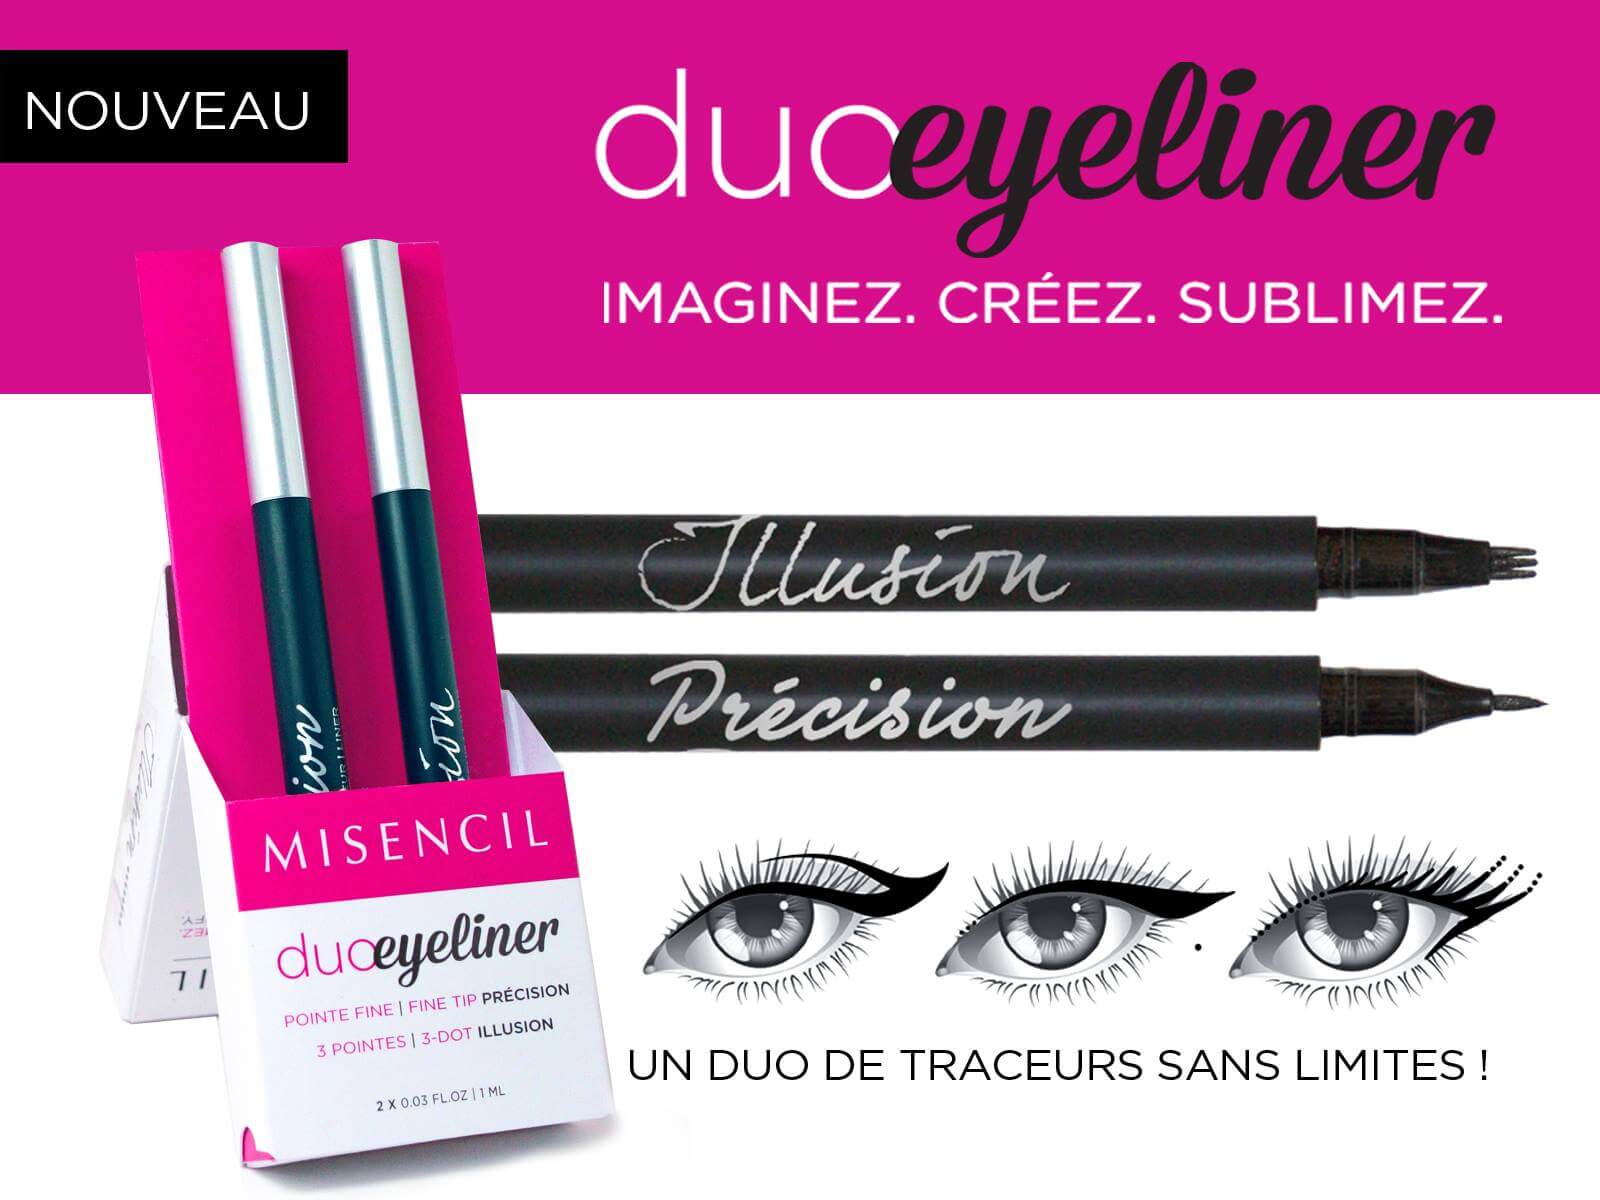 DUO EYE-LINER MISENCIL